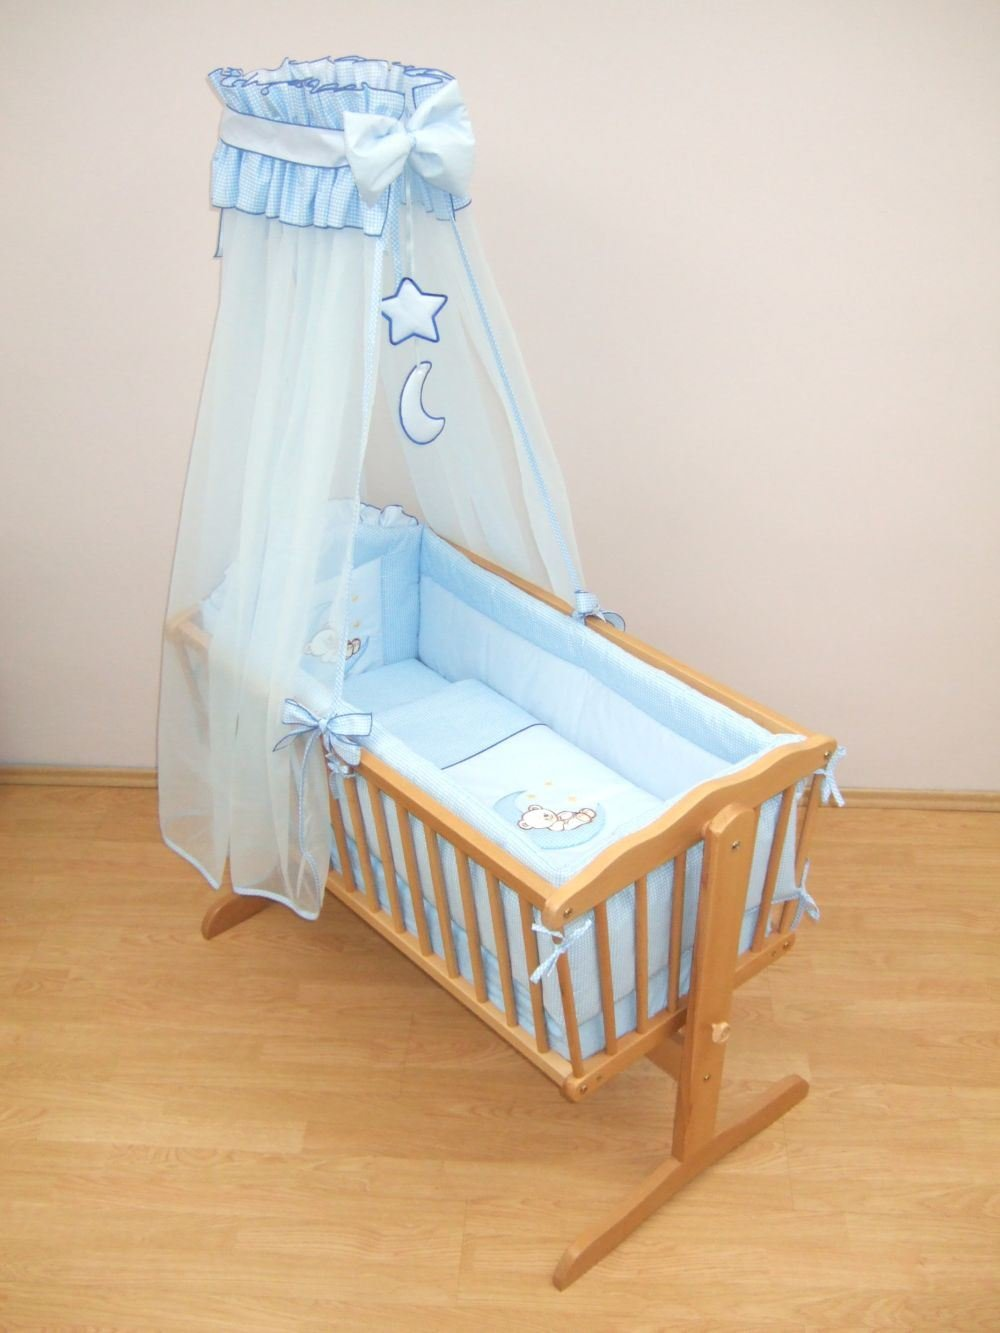 10 Piece Nursery Crib Bedding Set 90x40cm Fits Rocking/Swinging Cradle (Bear Moon Blue) Baby Comfort